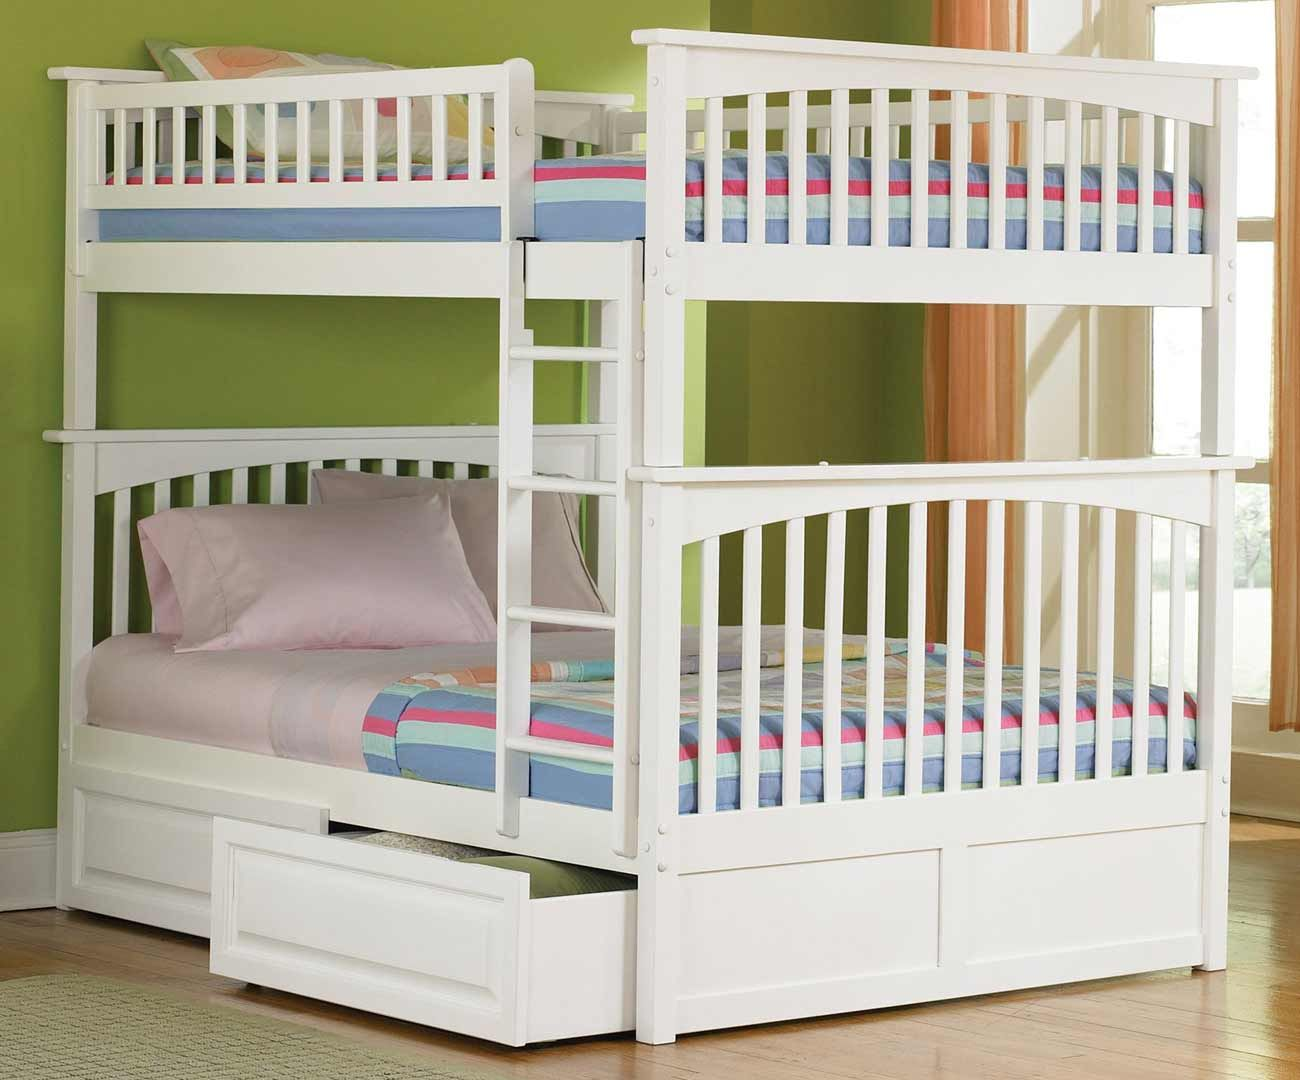 Bedroom designs for teenagers with 2 beds - Teen Room Ideas For Girls With Bunkbeds Columbia Full Size White Bunk Beds For Teens